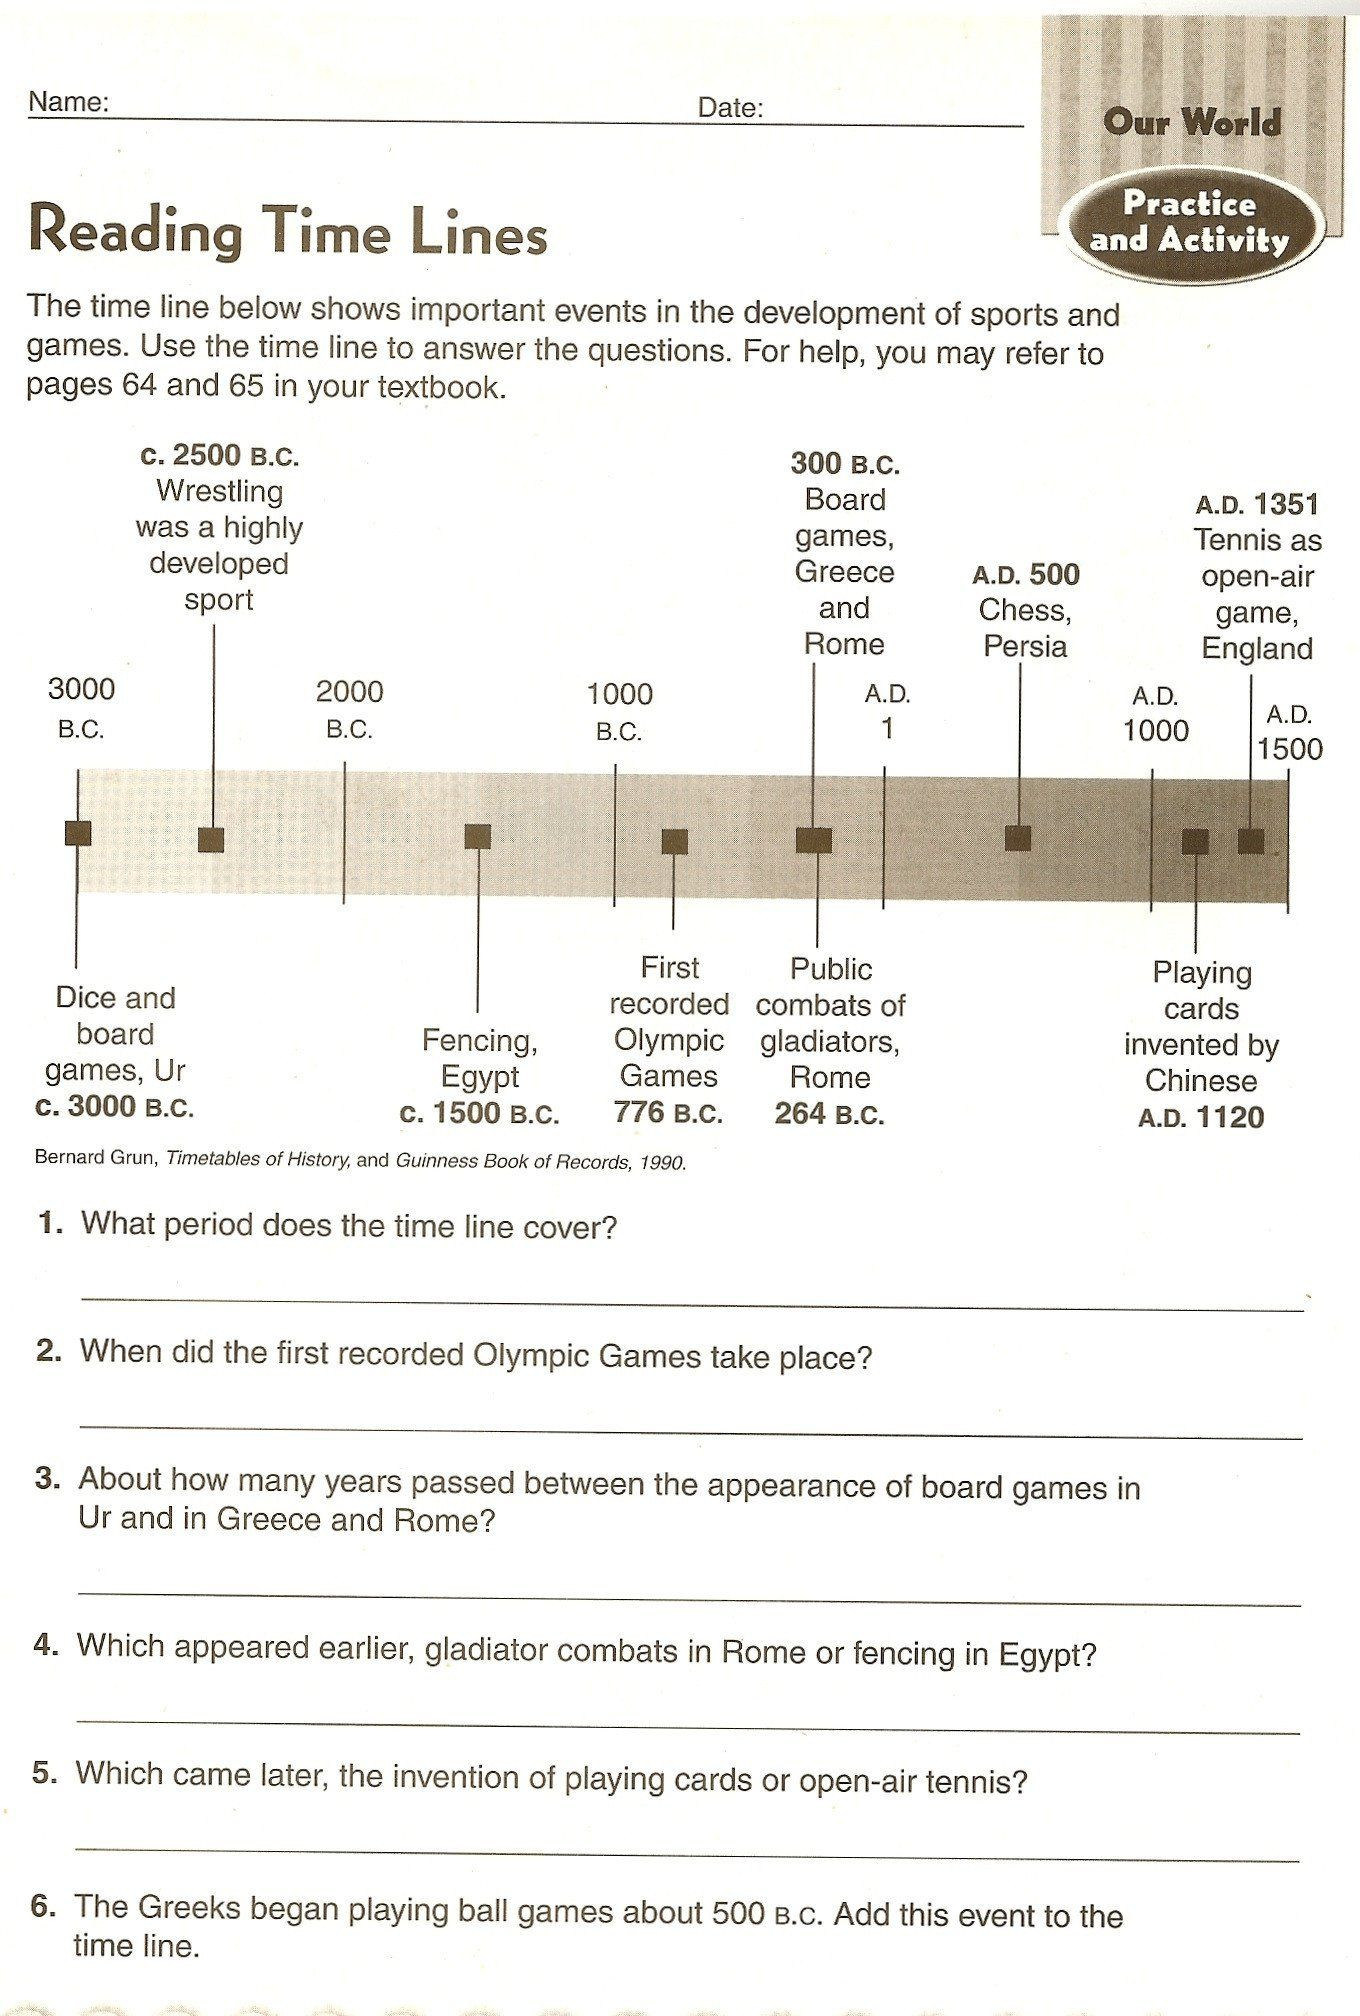 Social Studies Worksheets 6th Grade 6th Grade social Stu S Worksheet 6th Grade Mesopotamia and